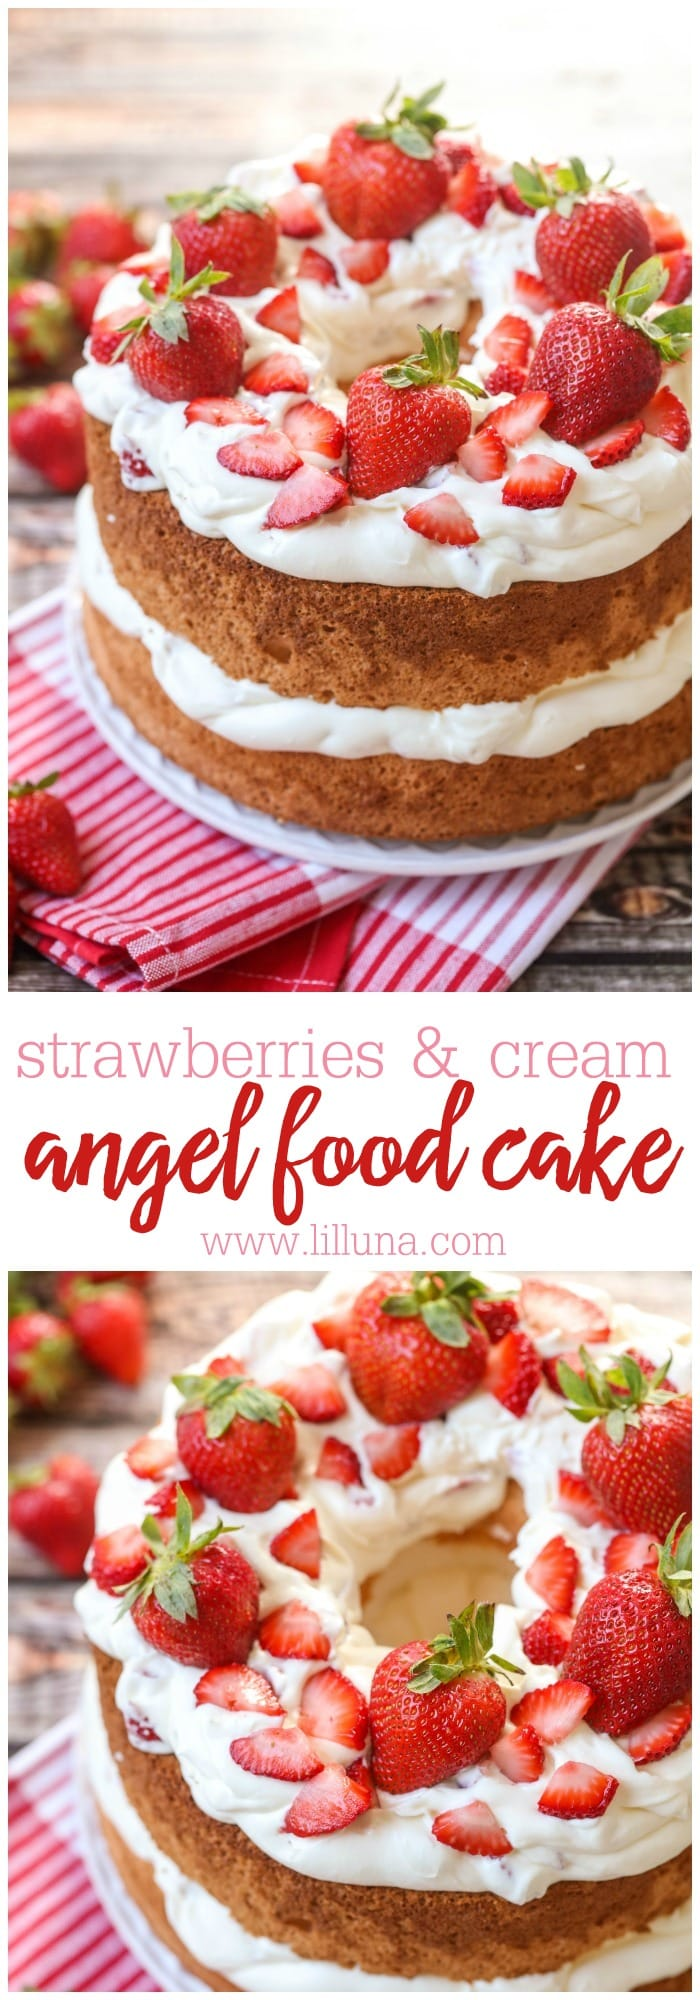 Angel Food Cake With Strawberry Whipped Cream Filling